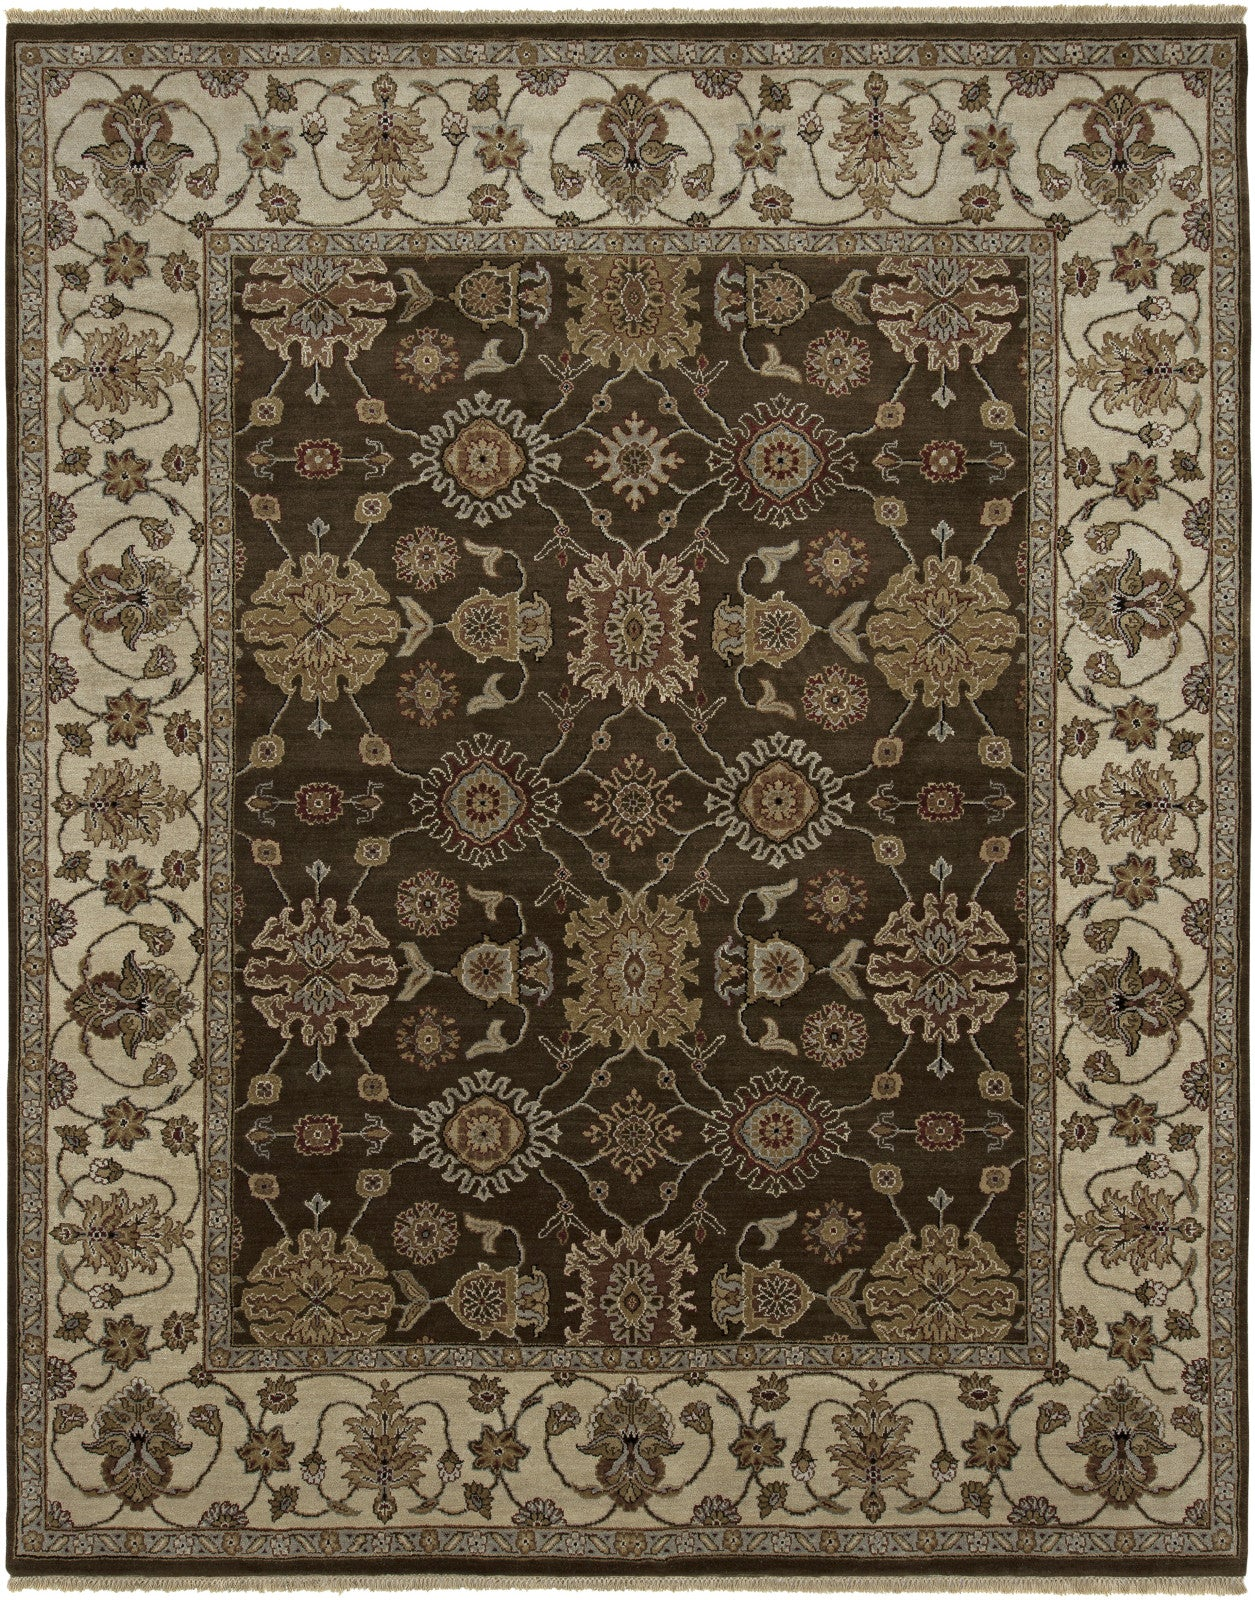 Amer Luxor CD-25 Chocolate/Beige Area Rug main image